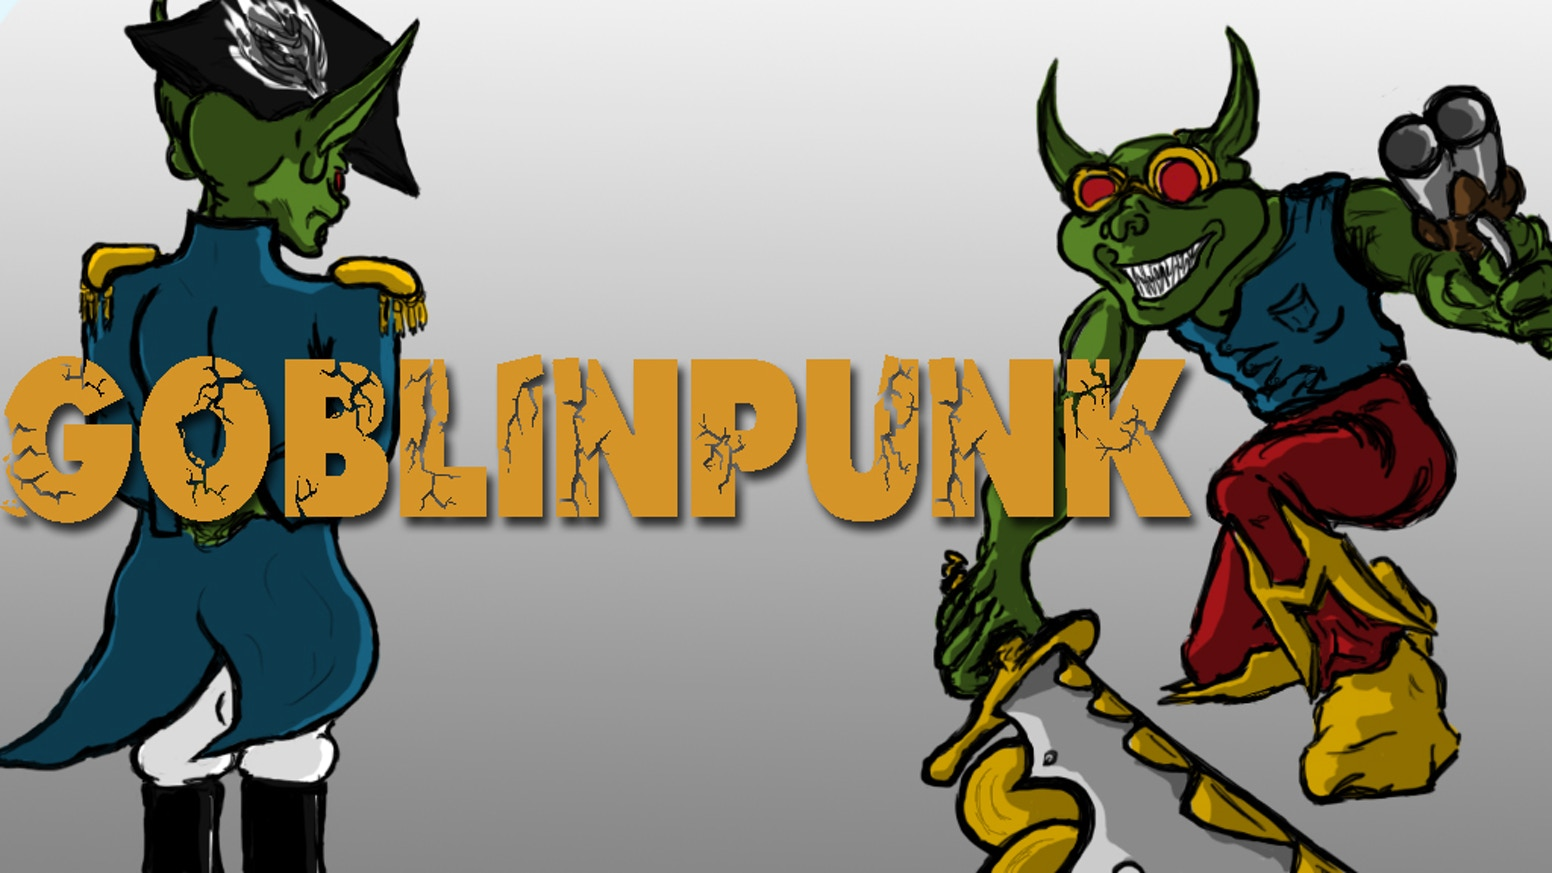 Across the countryside, Goblins have been raiding and pillaging with blimps and clockwork weapons. Its up to your heroes to stop them!